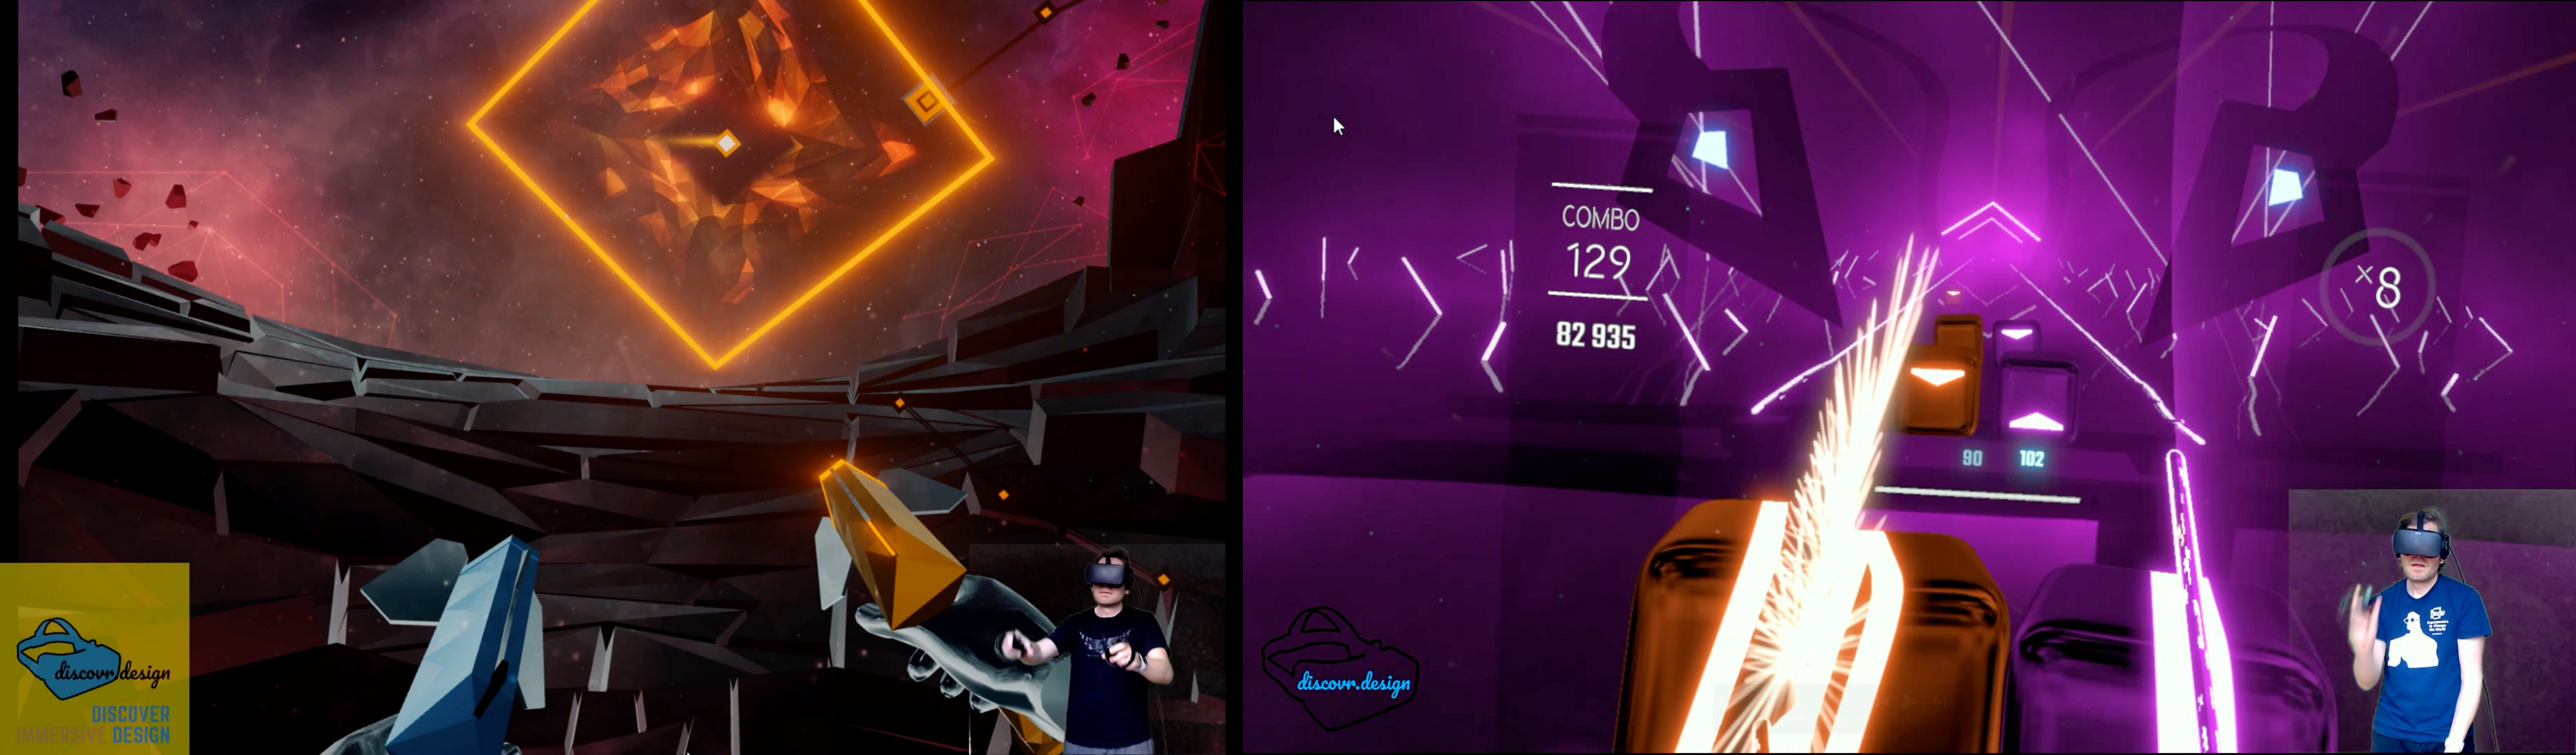 Five Design Learnings From Comparing Beat Saber To Its Competition By Aki Jarvinen Virtual Reality Pop That i can make your hands clap. comparing beat saber to its competition